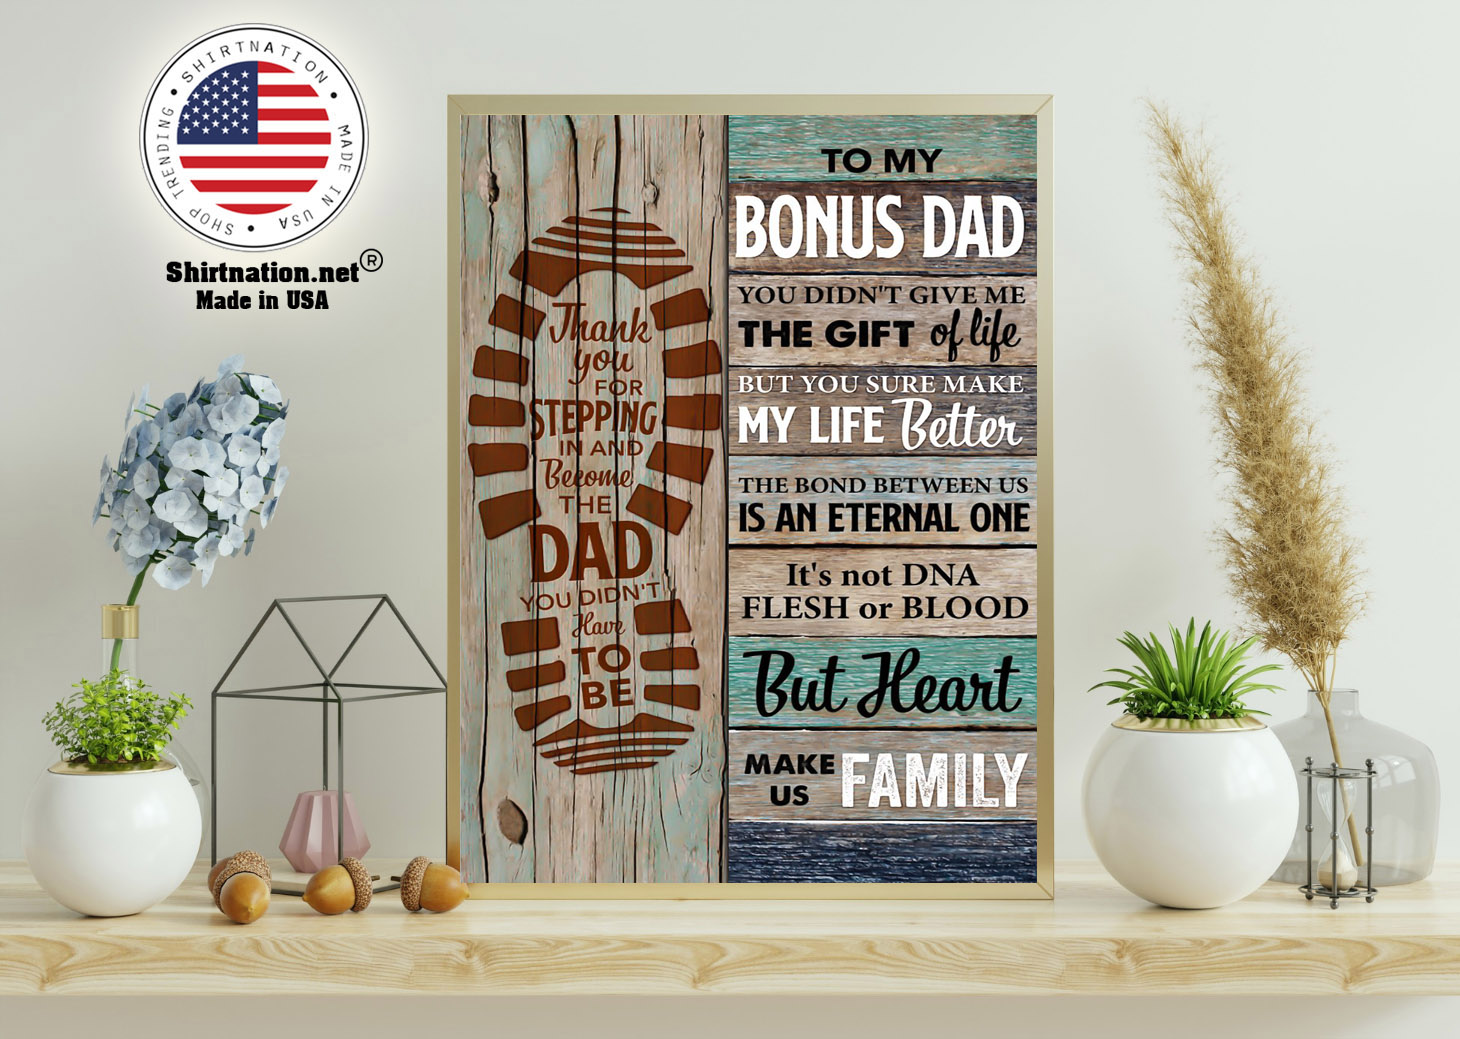 To my bonus dad you didnt give me the gift of life but you sure make my life better poster 11